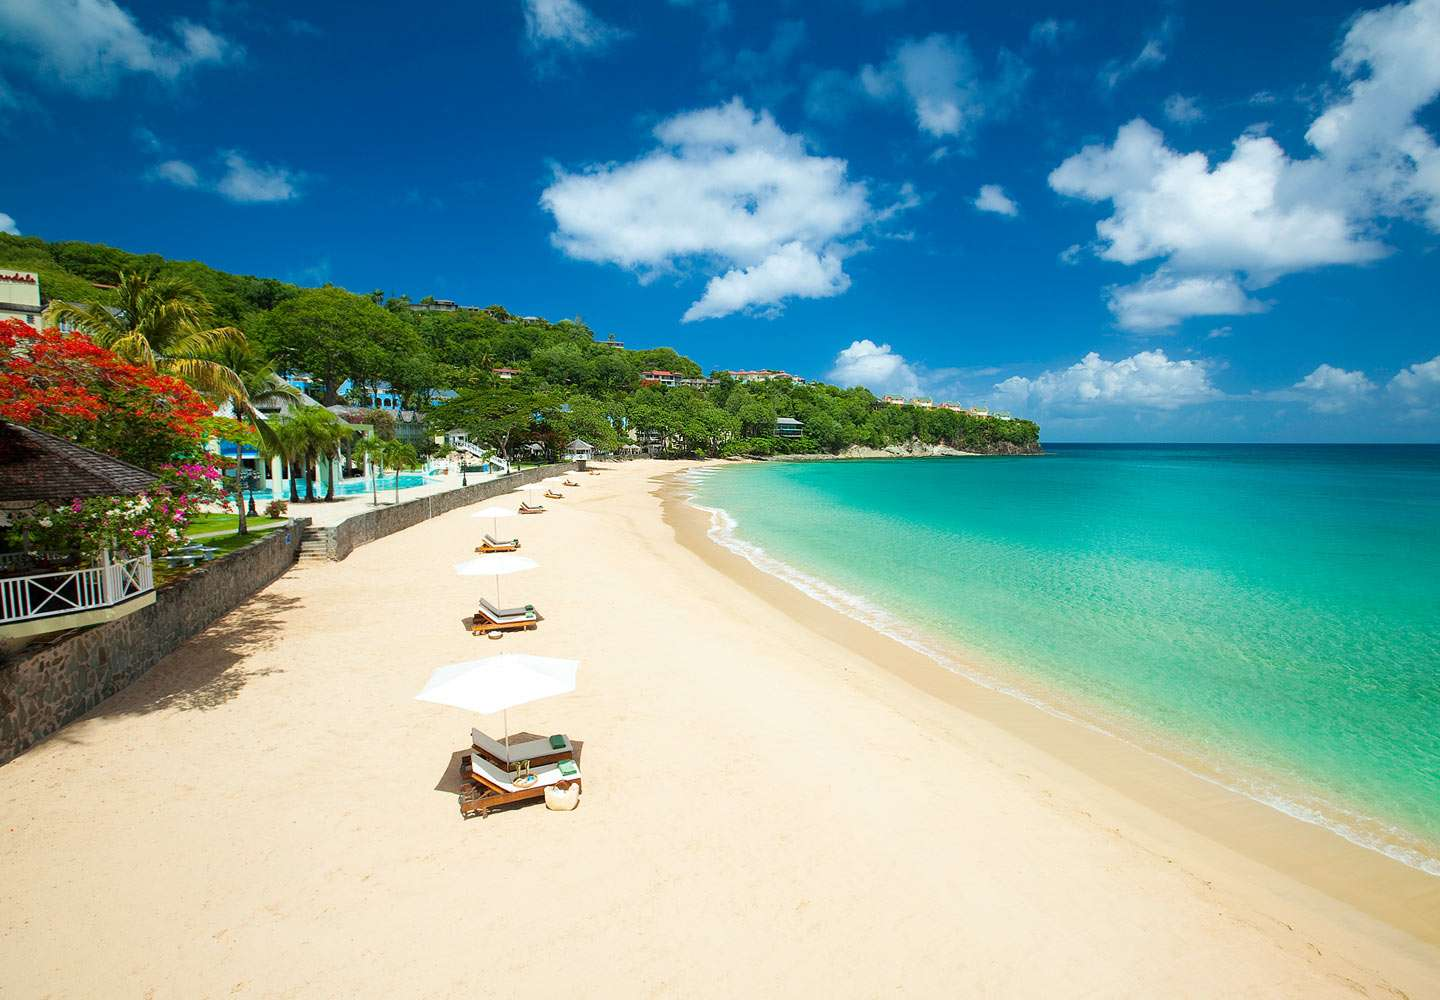 Image of Sandals Regency La Toc Golf Resort & Spa, Castries, St Lucia